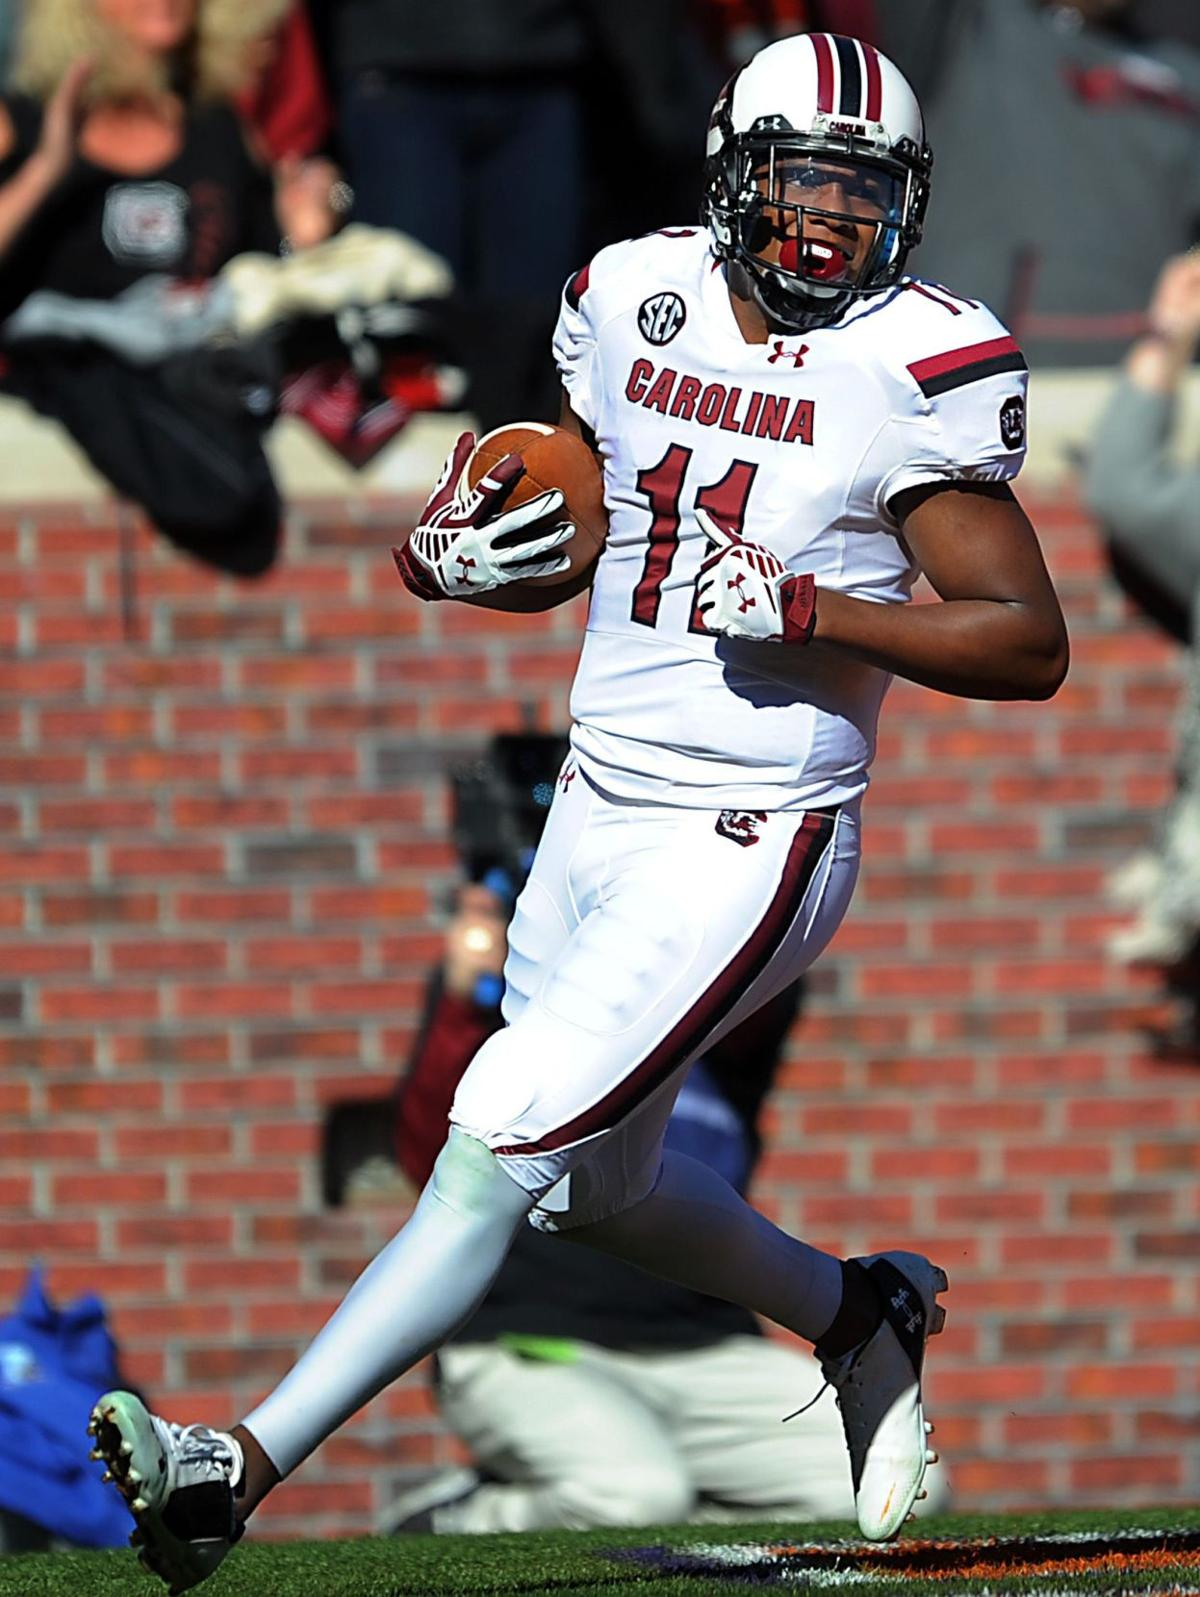 USC Top 10: On a team with plenty of question marks, Pharoh Cooper is the real thing